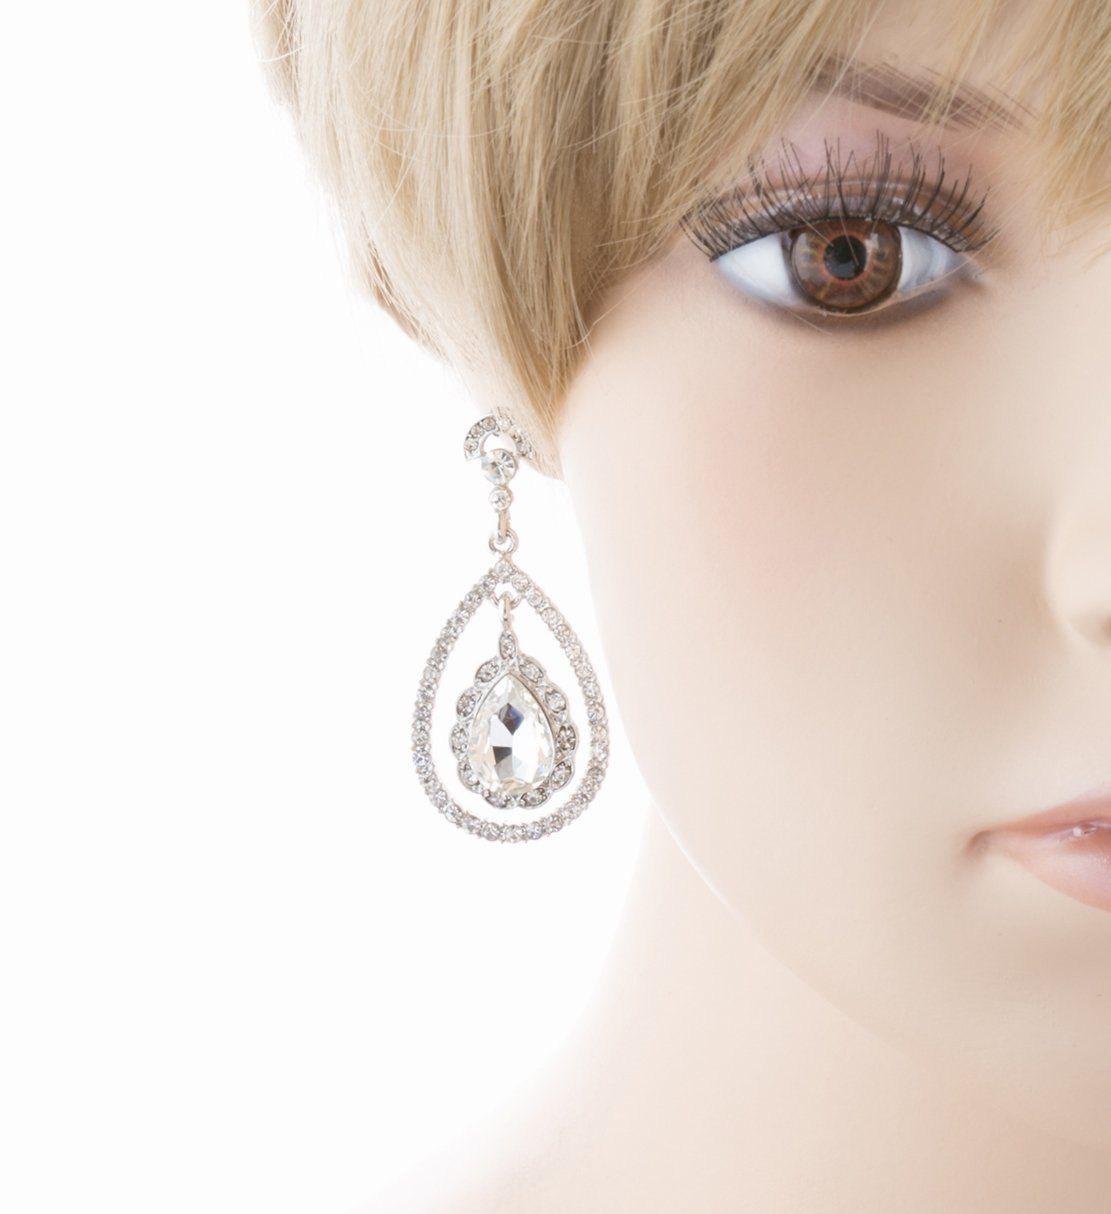 Bridal Wedding Jewelry Crystal Rhinestone Dazzle Elegant Dangle Drop Earrings SV by Accessoriesforever (Image #3)